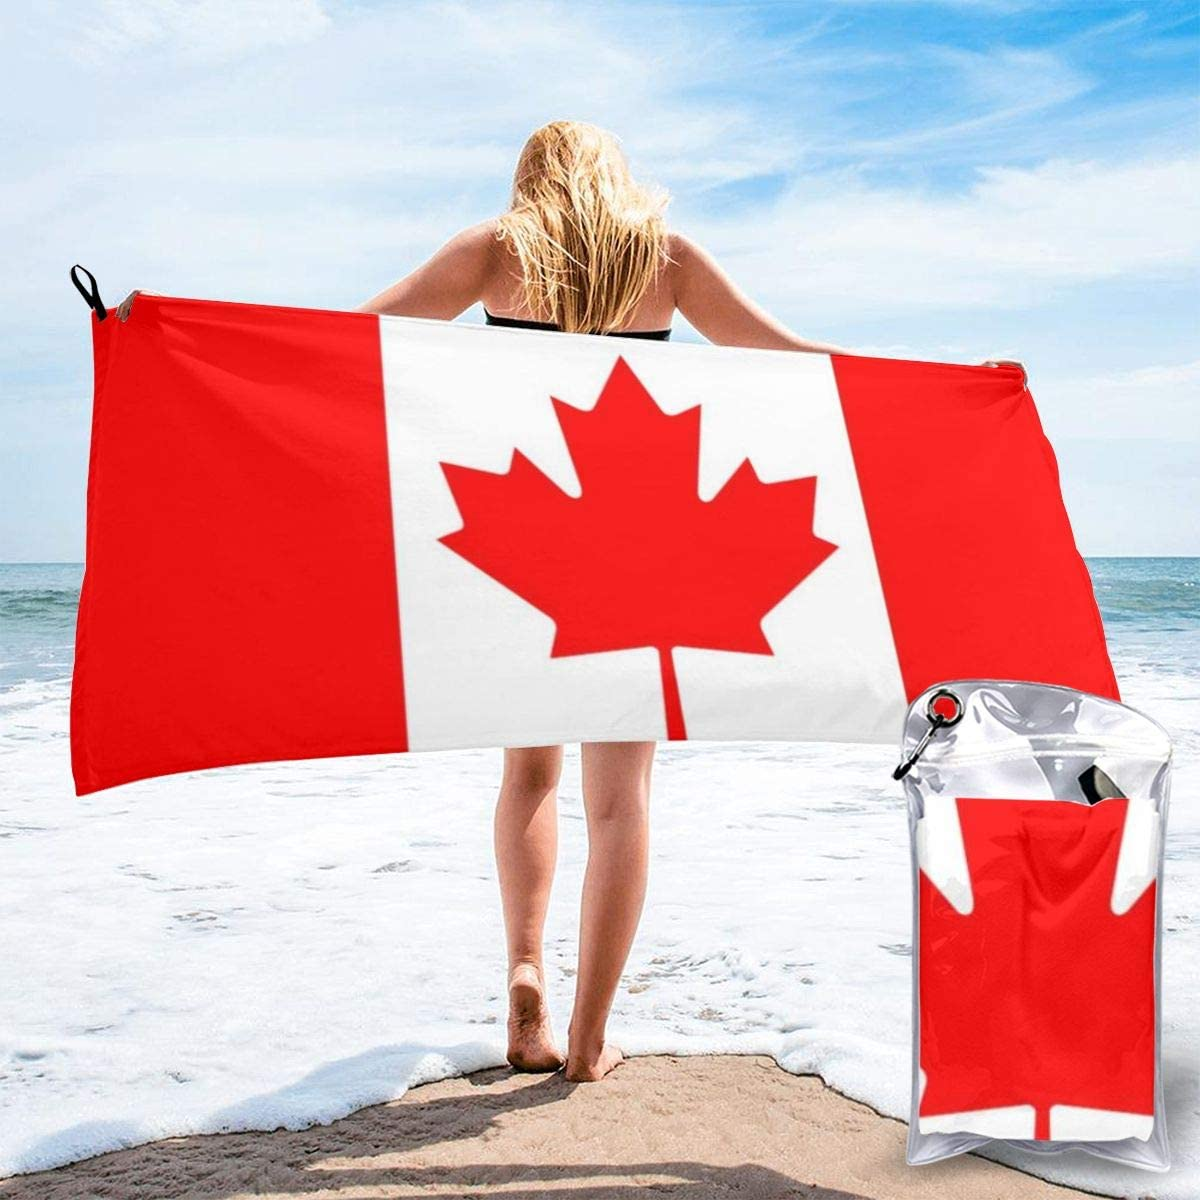 Quick Dry Beach Towel,Canada Maple Leaf Flag Travel Microfiber Bath Towel Blanket Super Absorbent Lightweight Towel for Beach,Pool,Spa,Swim,Hiking and Home Use,Oversize 31.5